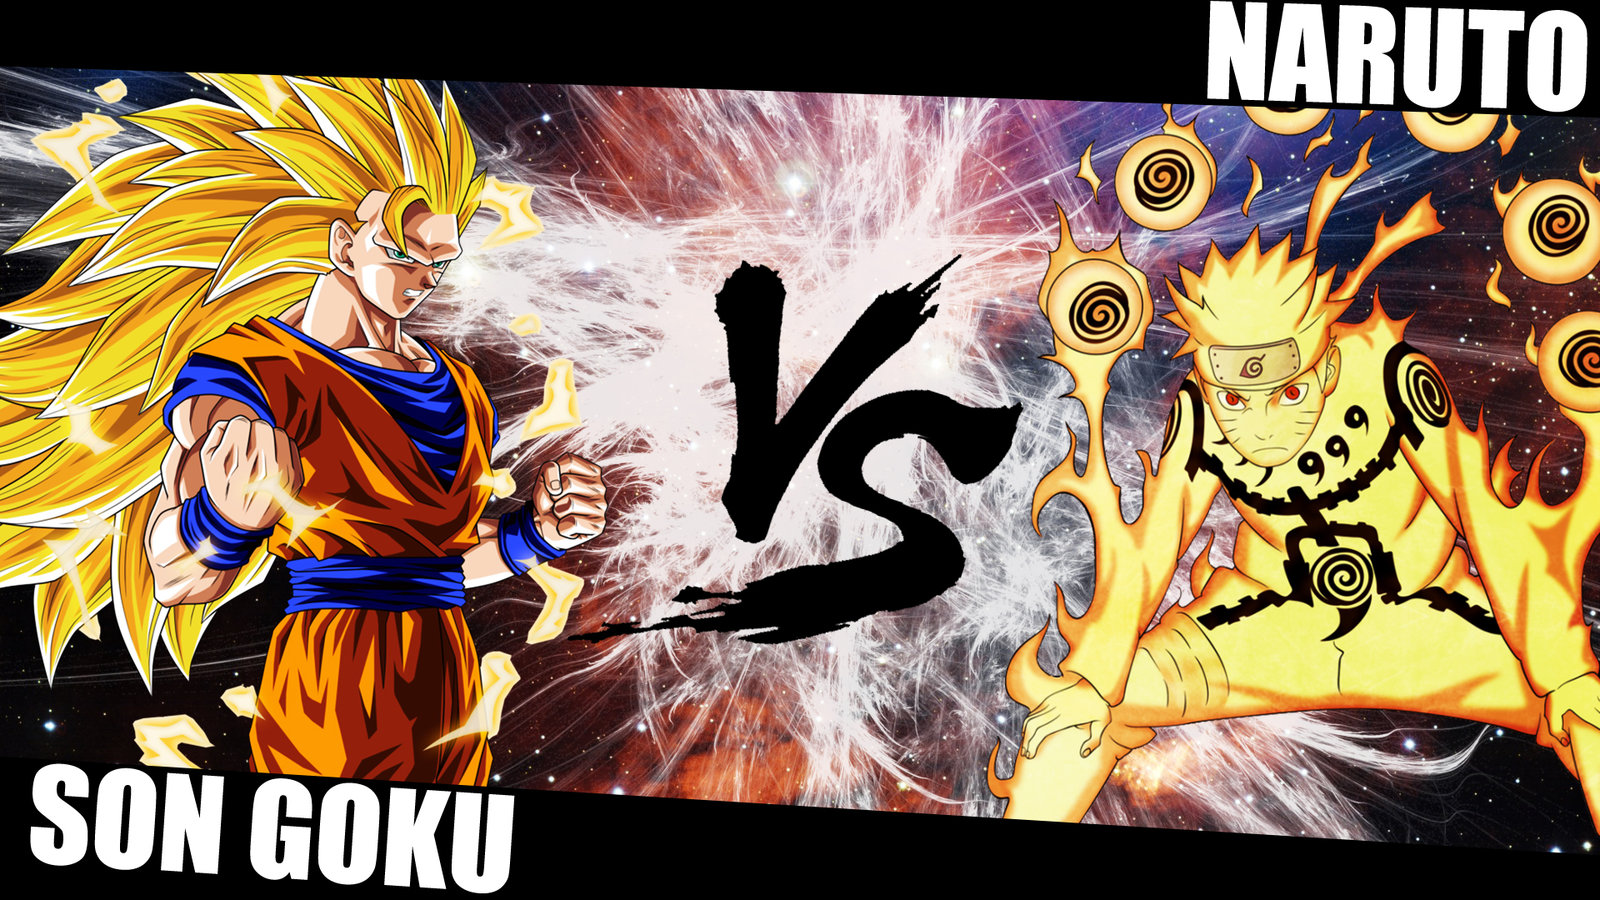 goku vs naruto wallpaper by oxelon customization wallpaper hdtv 1600x900